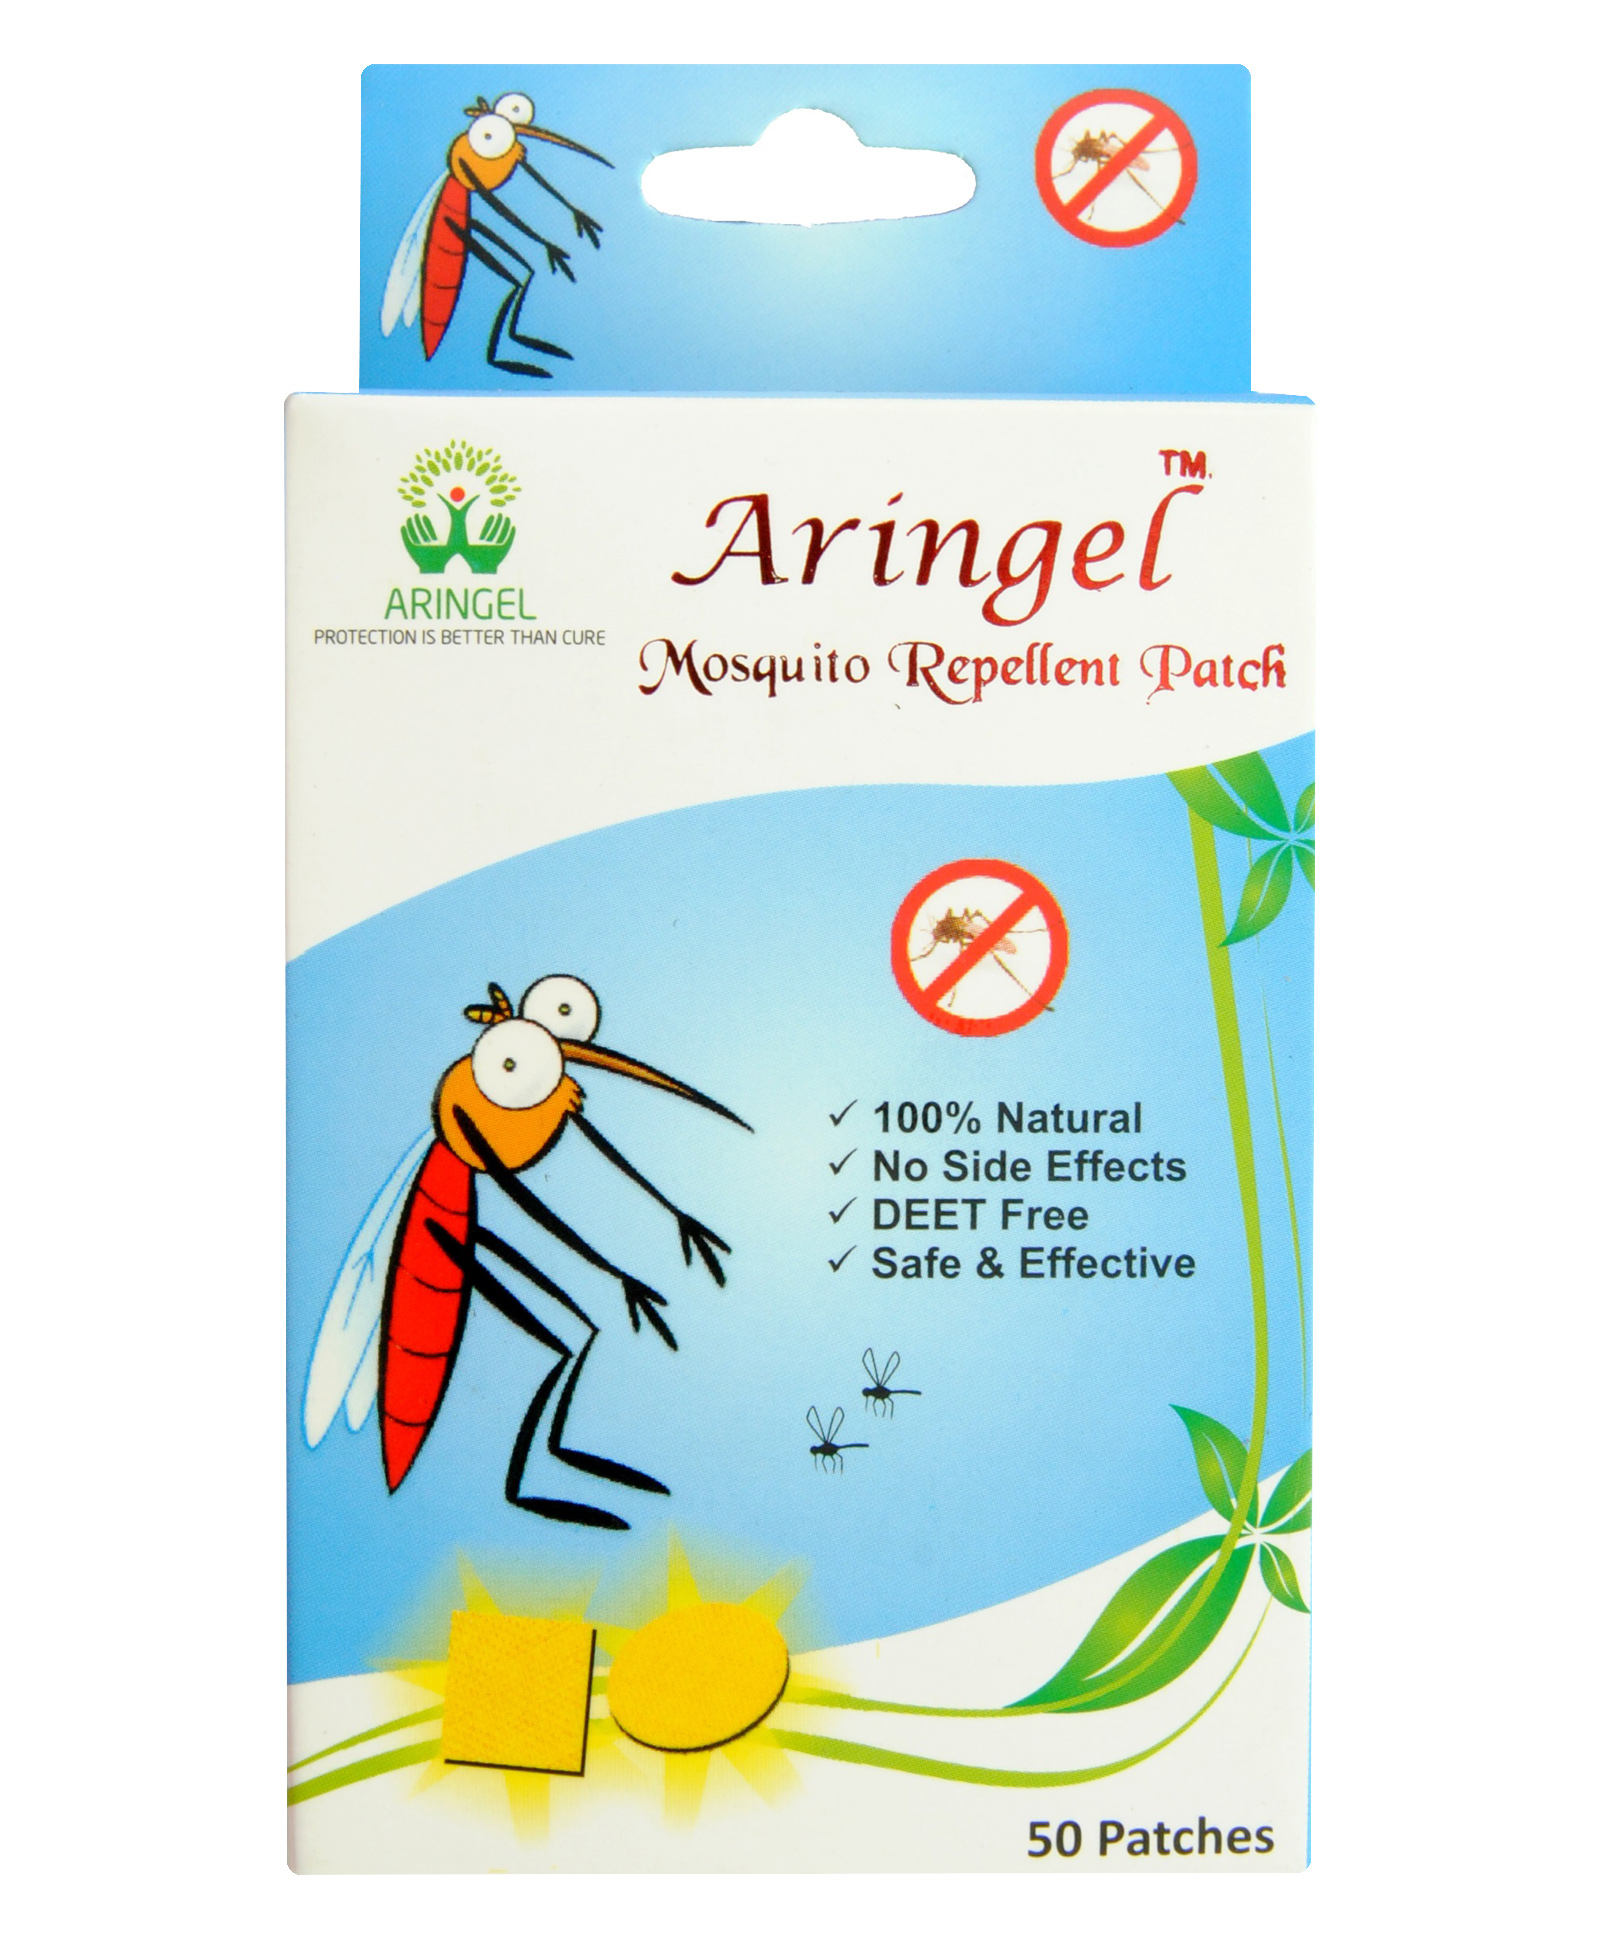 Mosquito Repellents For Babies Kids Online India Buy At Bite Fighters Lotion Roll On Aringel First Generation Repellent Patch 50 Patches